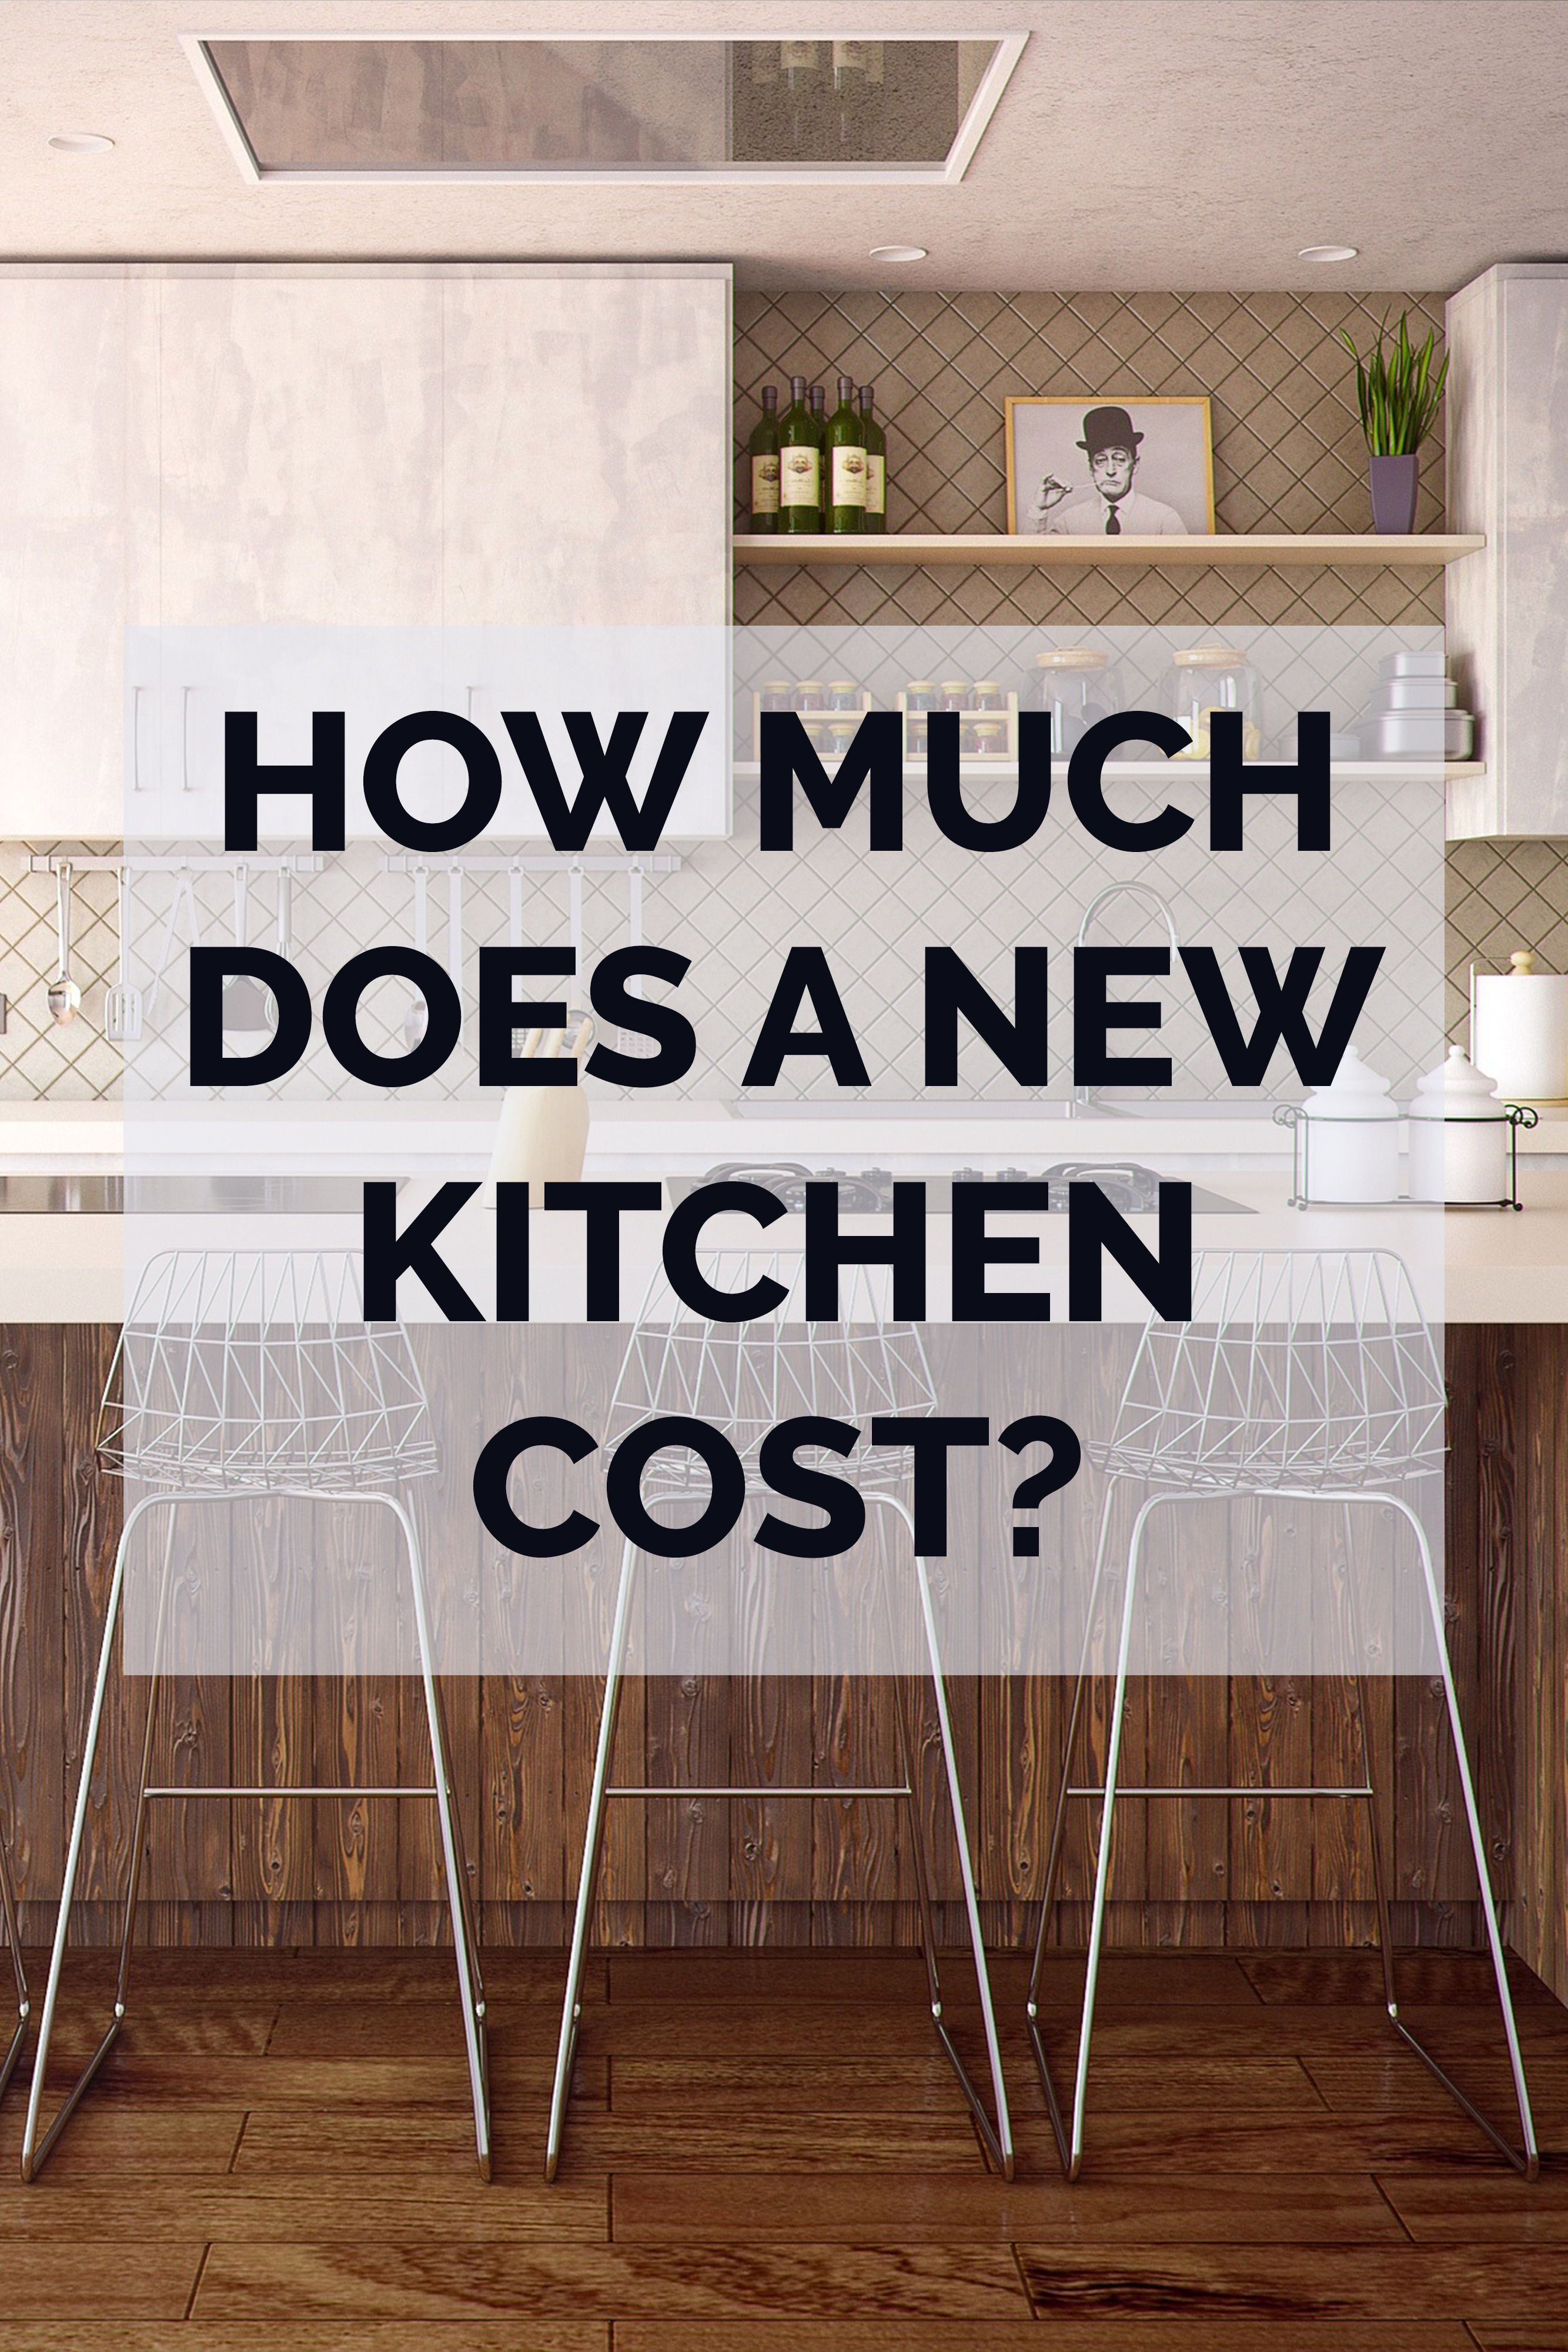 When Starting To Plan For A New Kitchen, The Question I Get Asked Probably  More Than Any Other Is, How Much Does A New Kitchen Cost? So Lets Answer It!